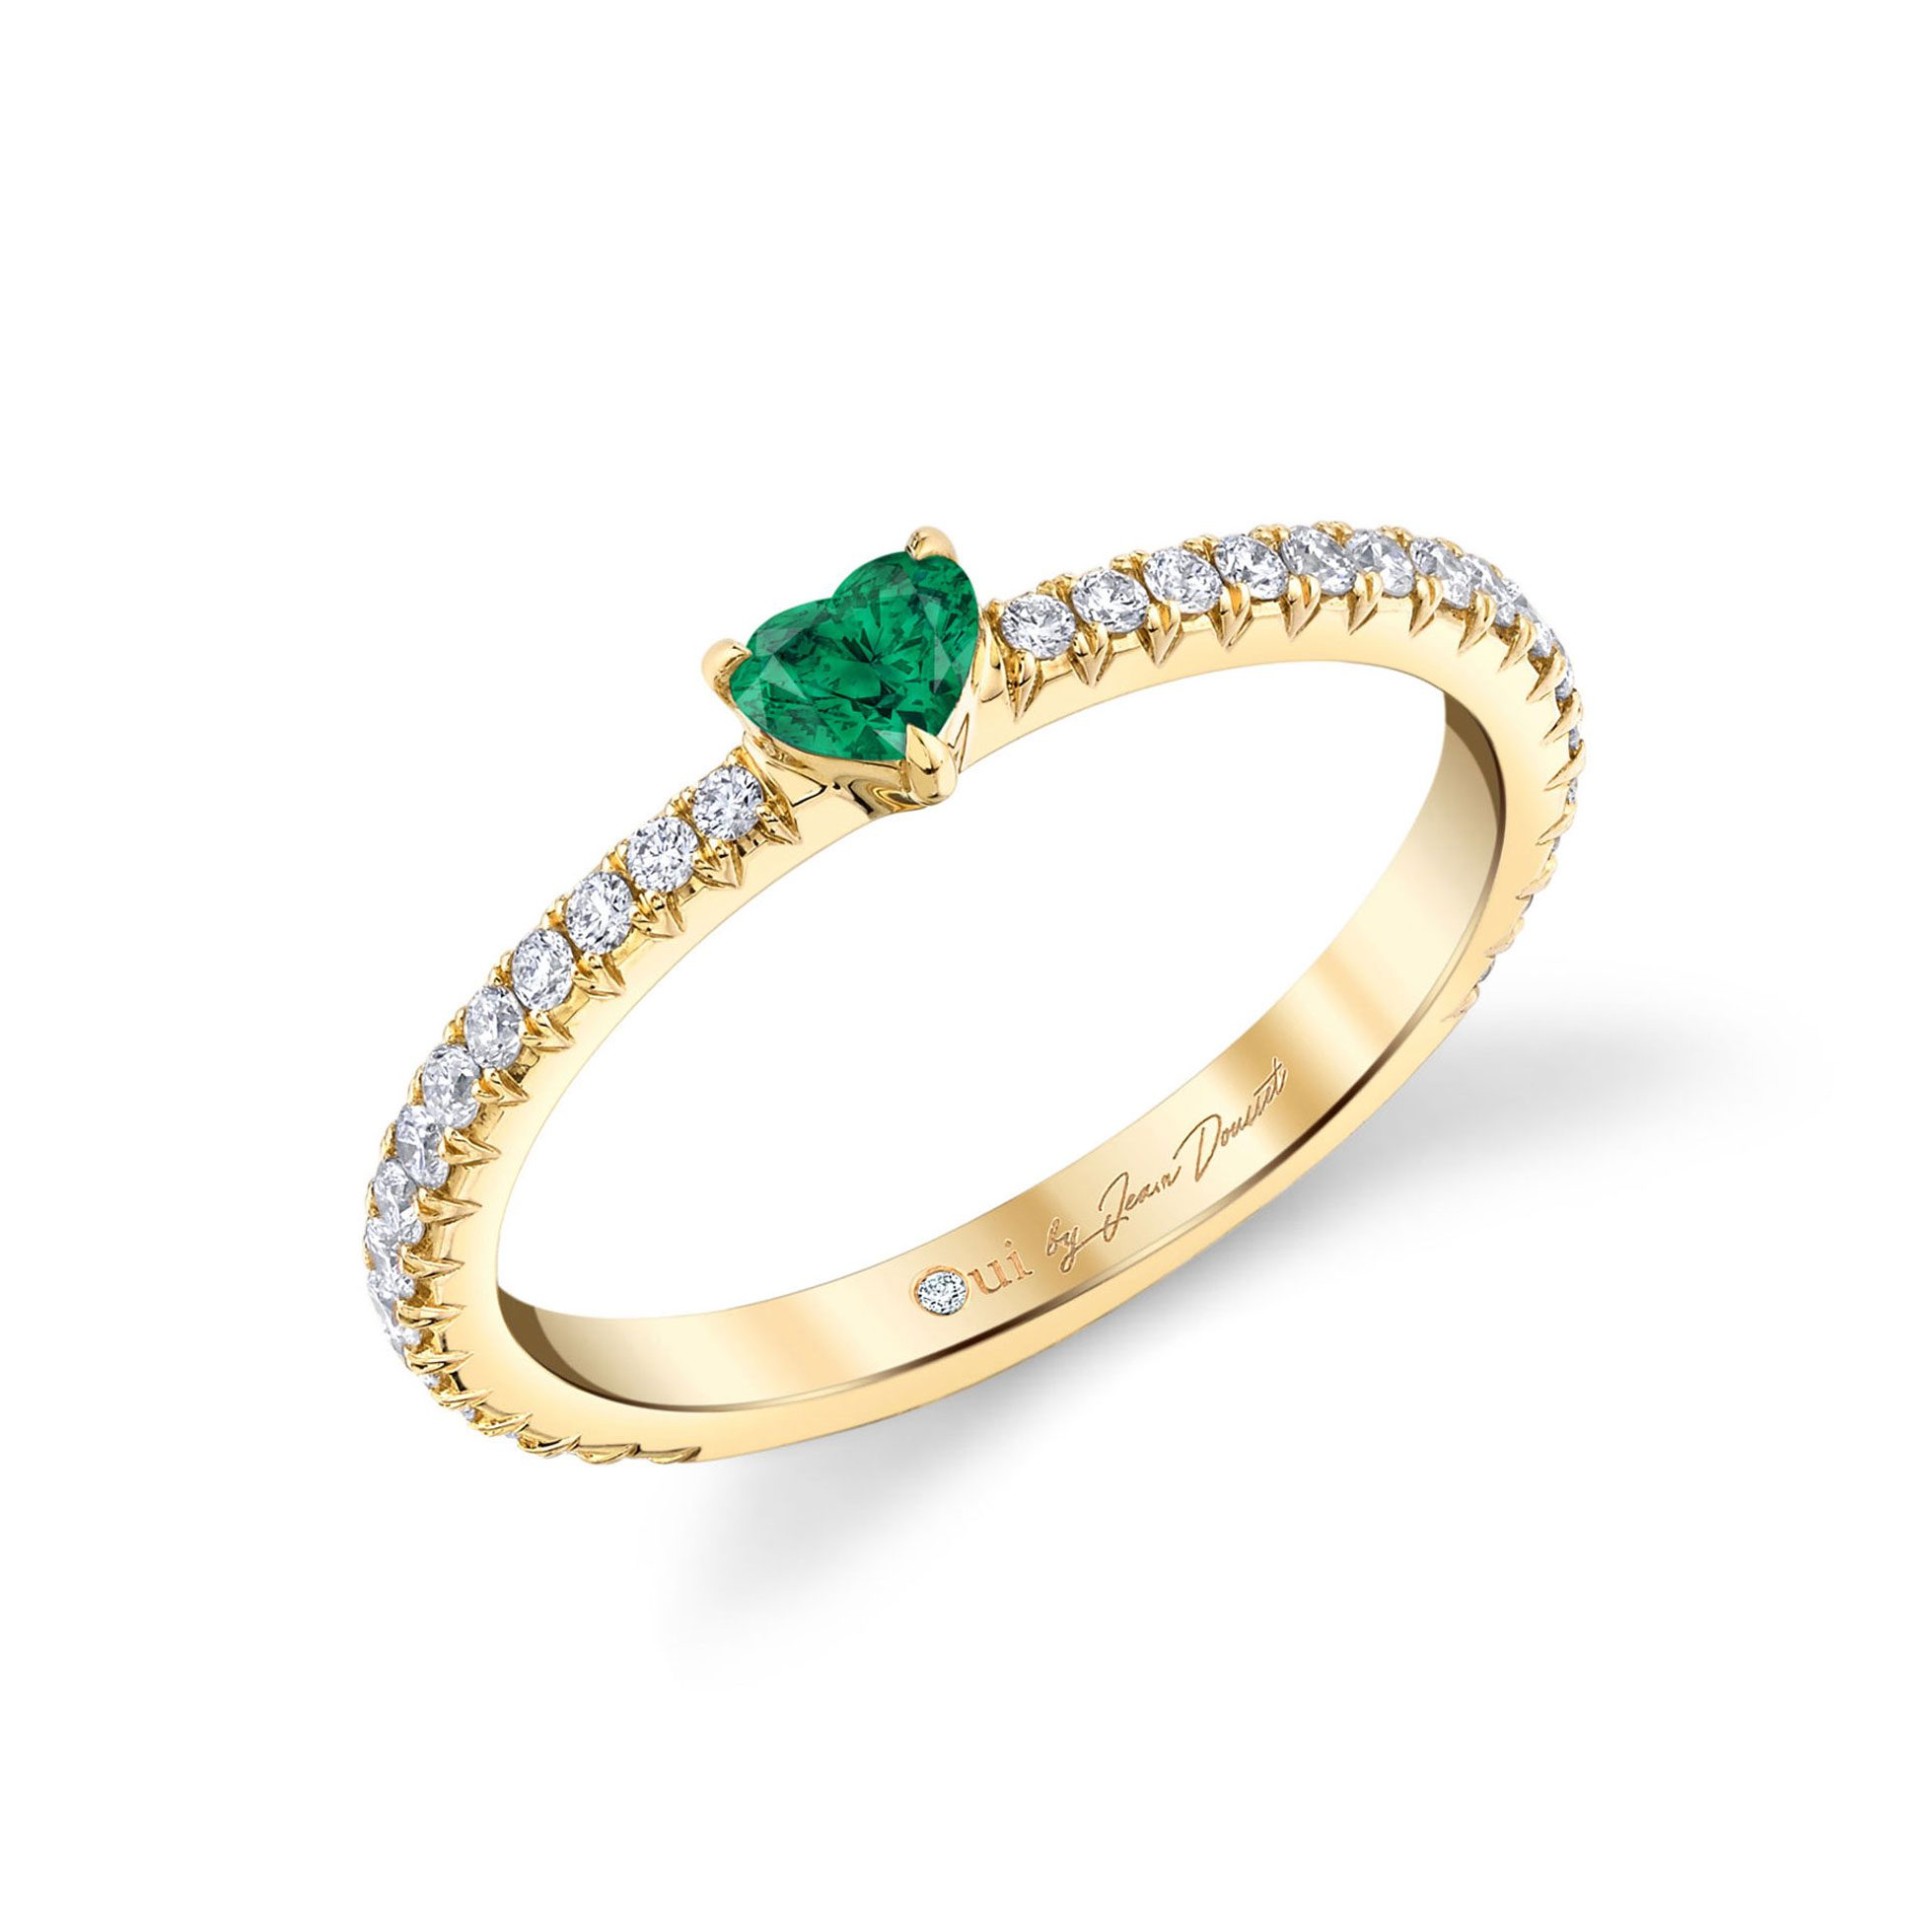 La Petite Heart Emerald Ring diamond pavé band in 18k Yellow Gold Profile View by Oui by Jean Dousset